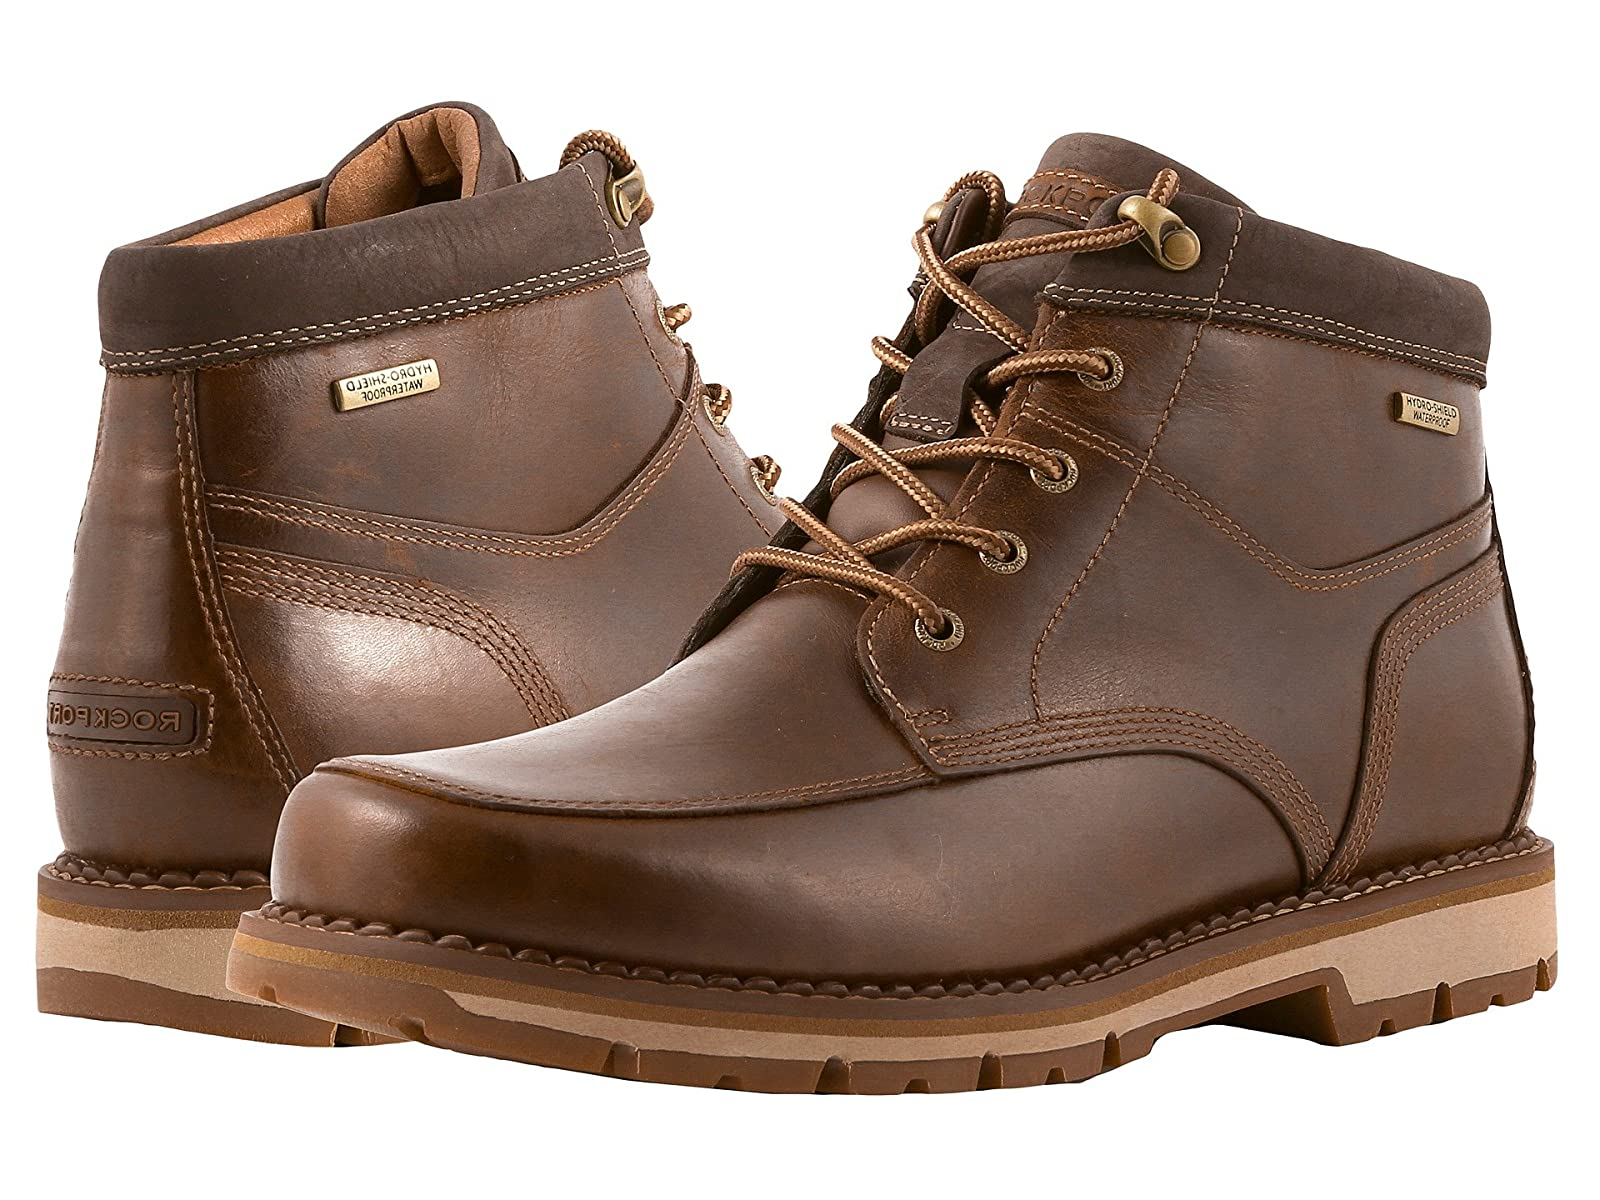 Rockport Centry Panel Toe Boot WaterproofEconomical and quality shoes